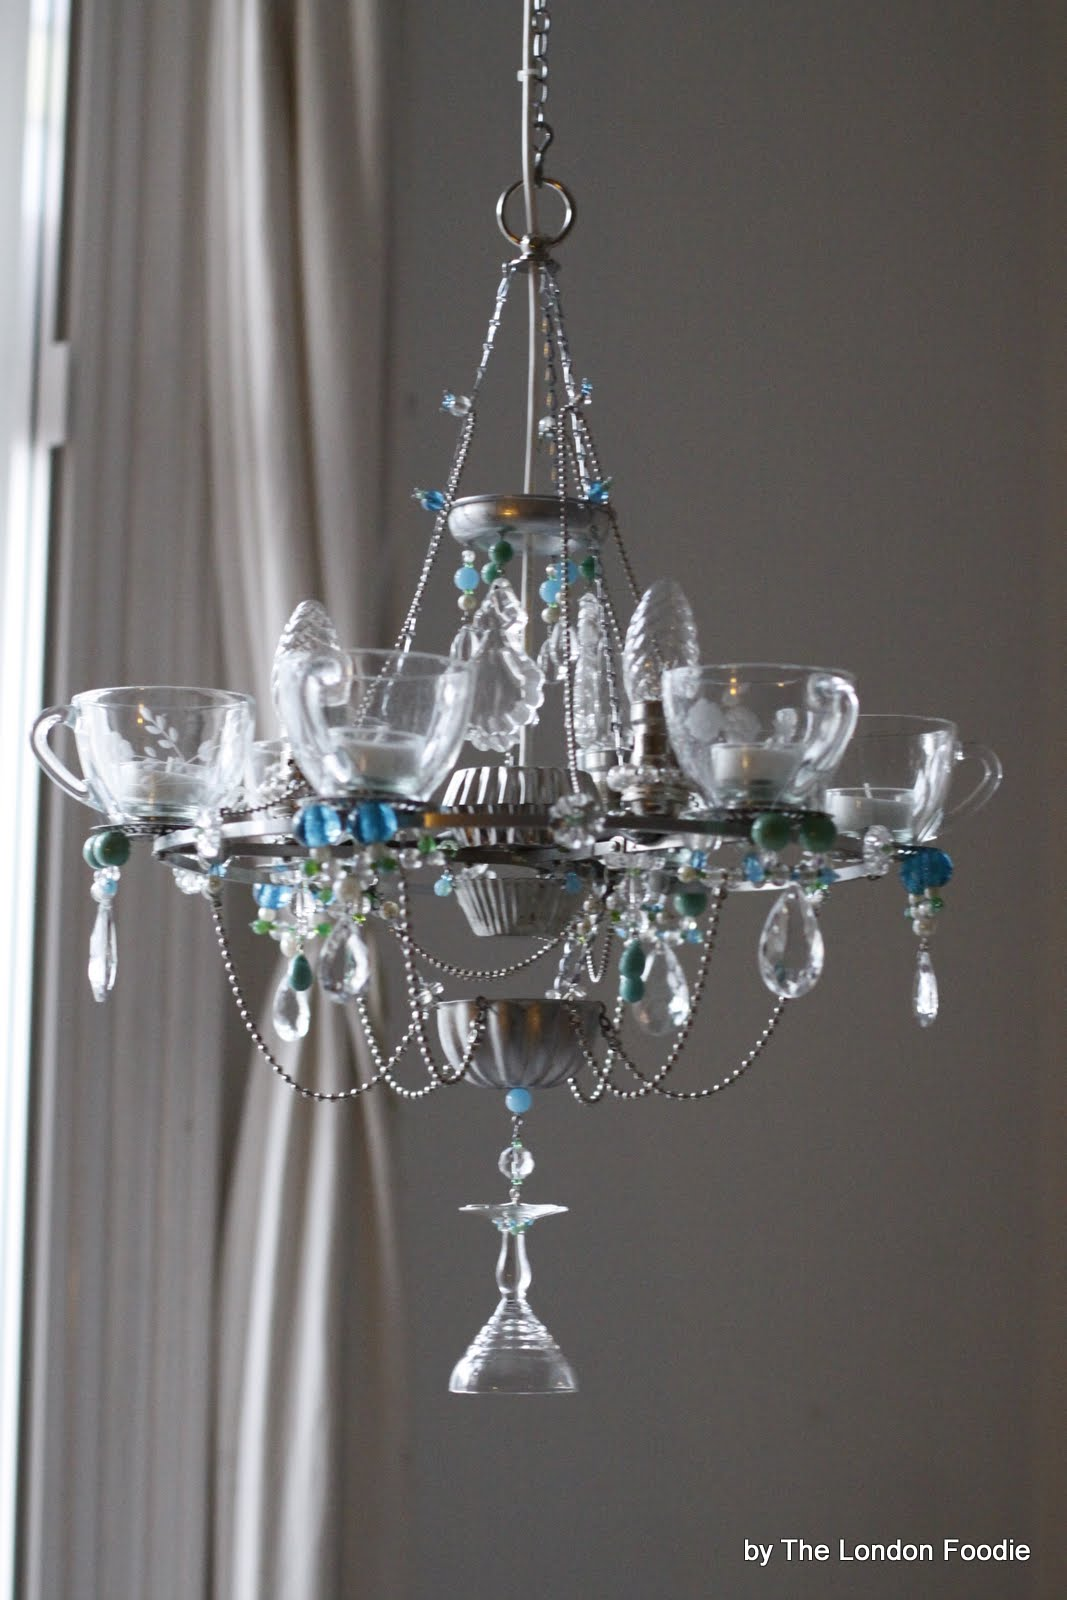 The london foodie the fantastic teacup chandeliers by madeleine the london foodie the fantastic teacup chandeliers by madeleine boulesteix arubaitofo Choice Image